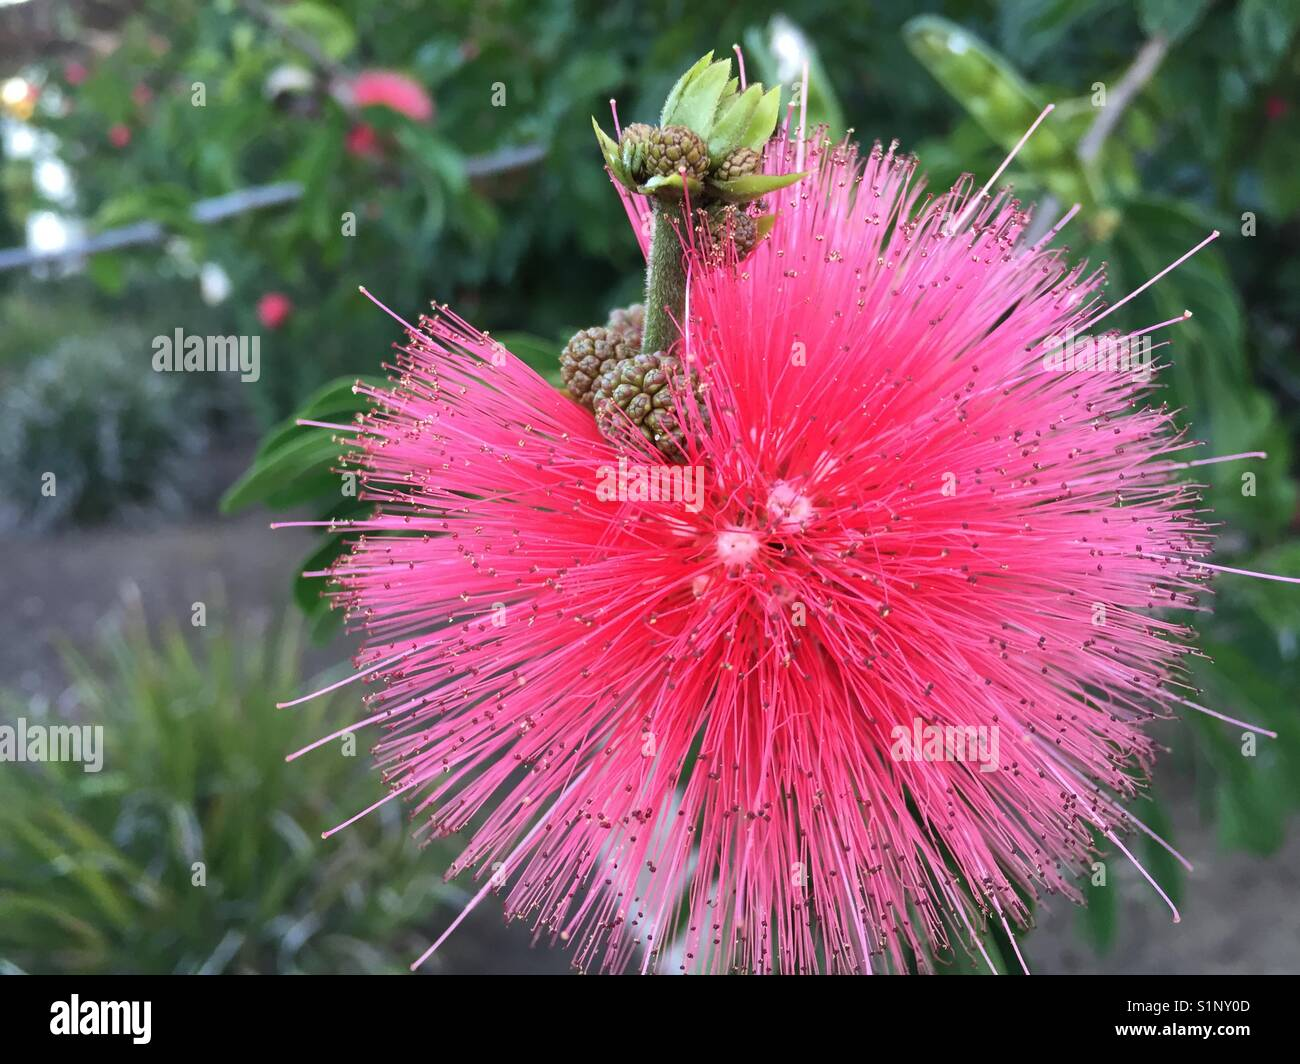 Fuzzy Pink Flower Stock Photos Fuzzy Pink Flower Stock Images Alamy